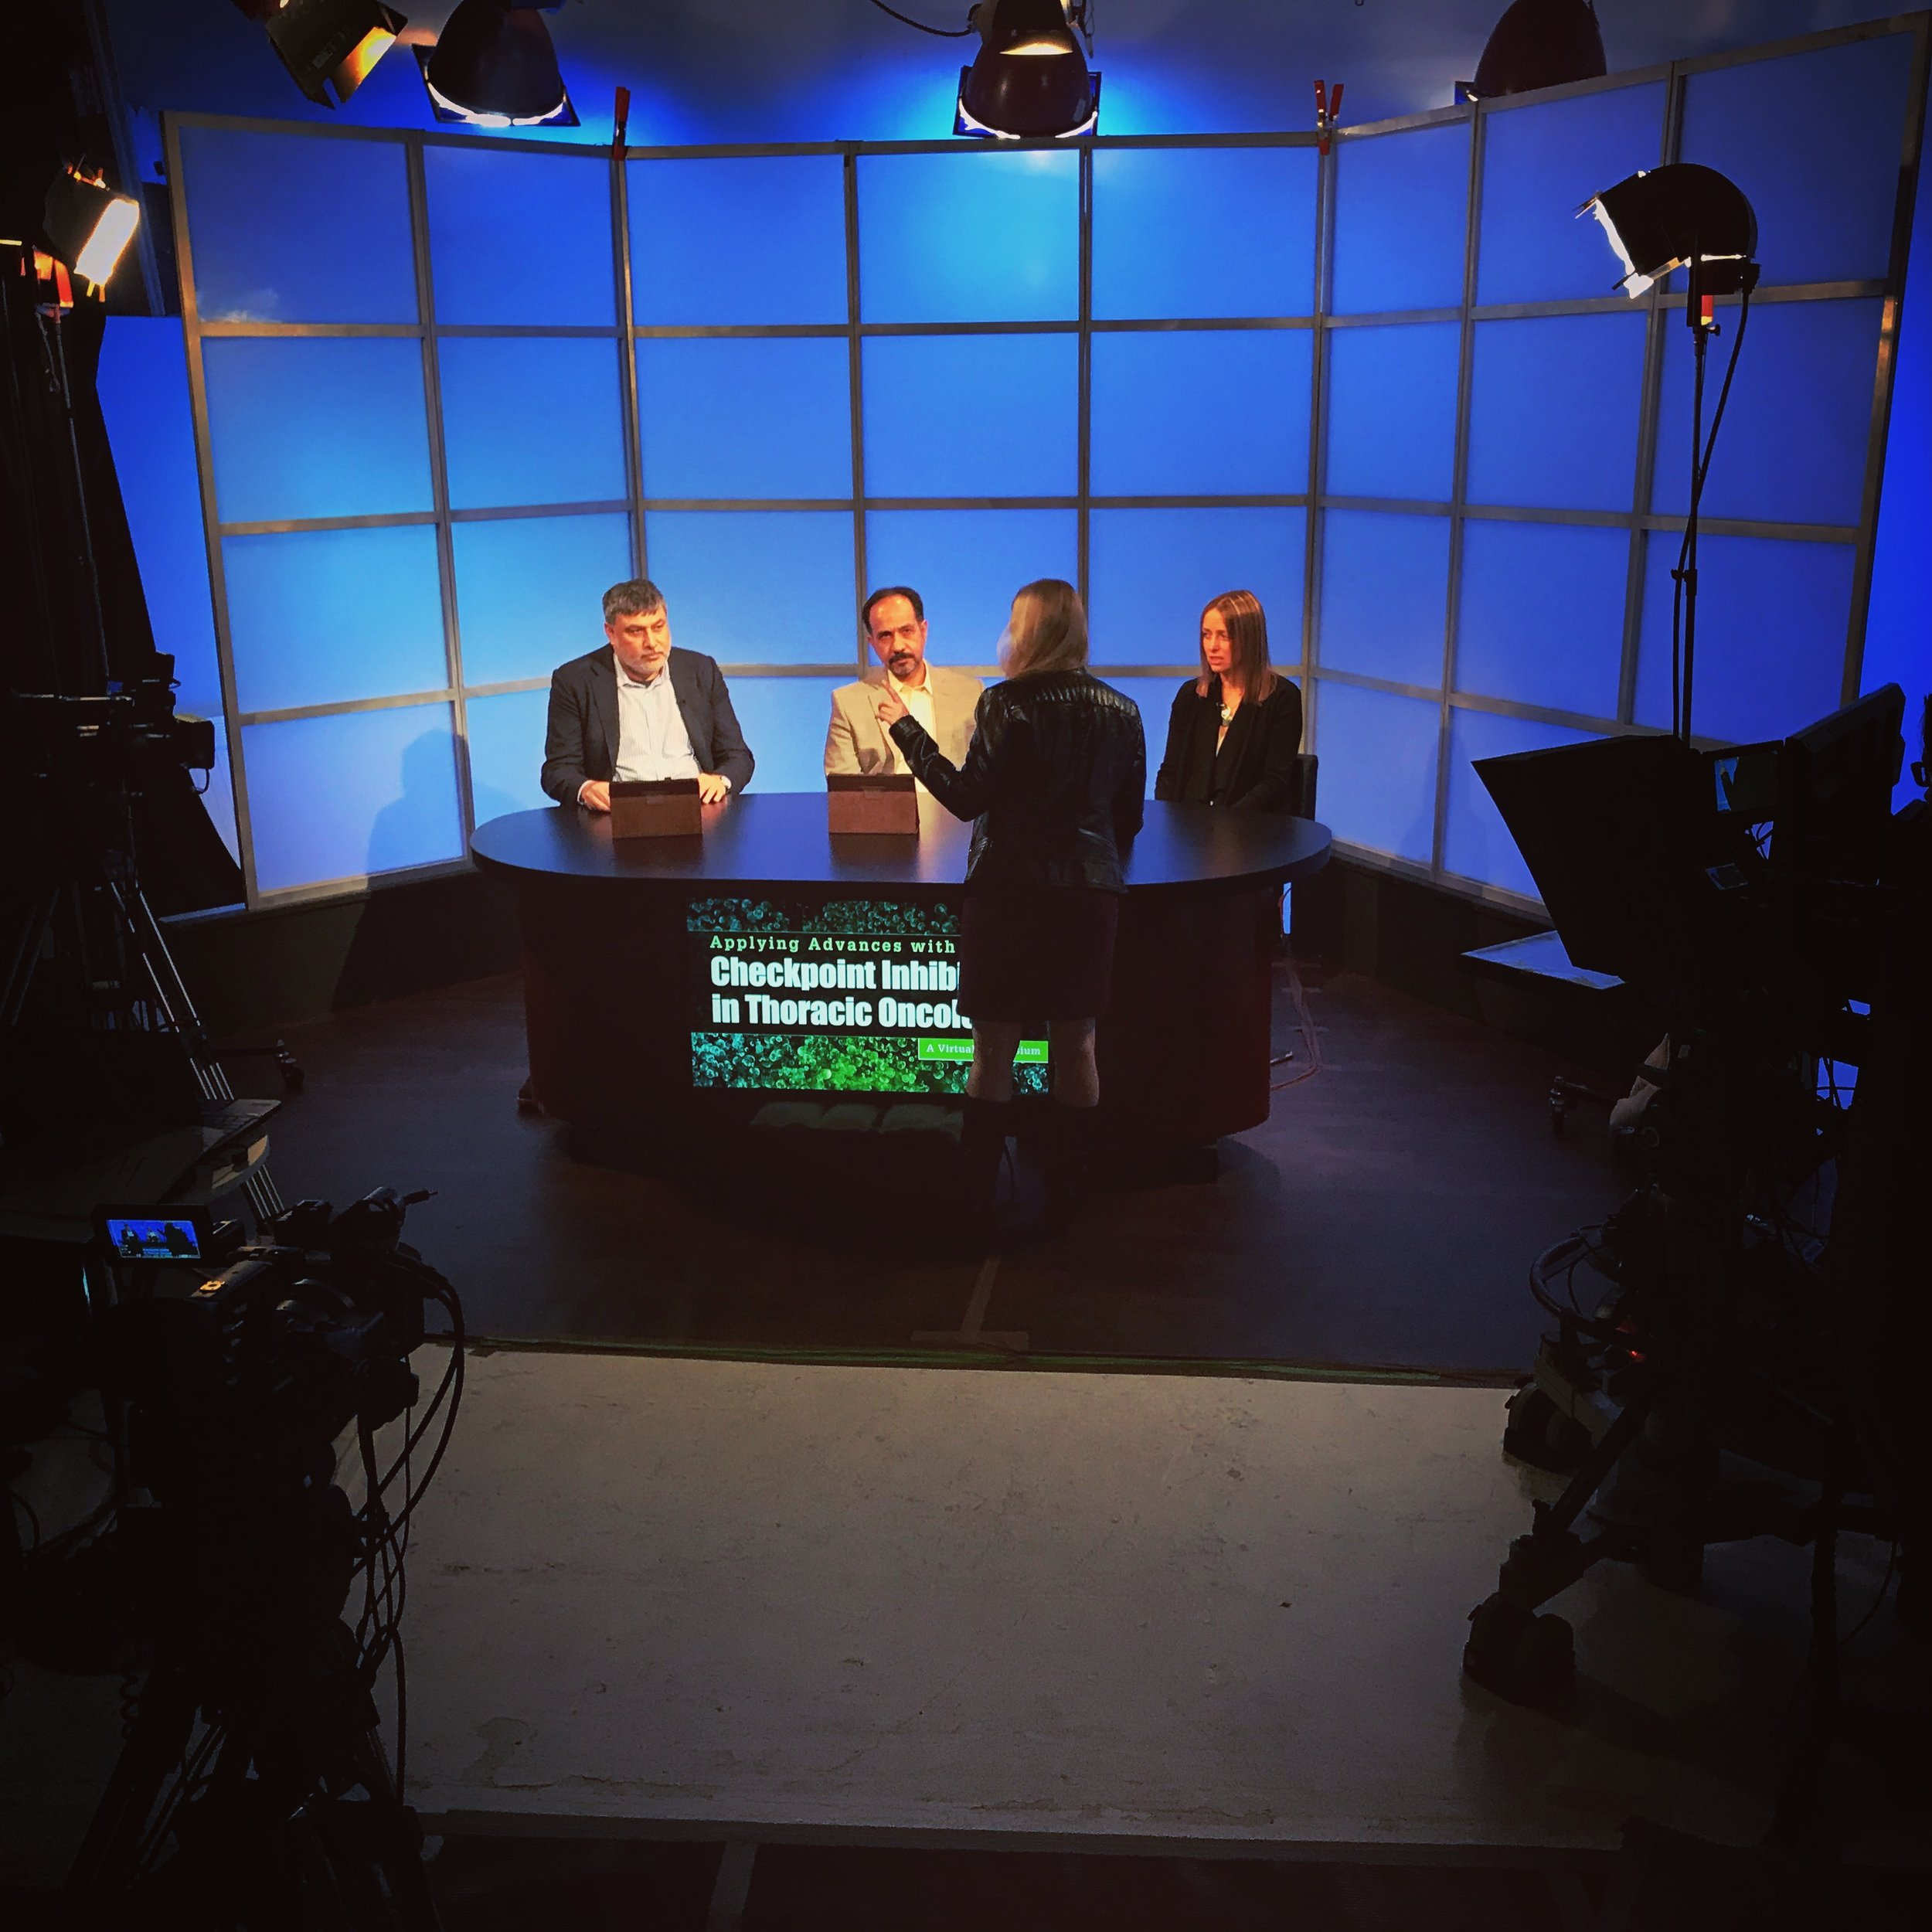 An Instagram Shot: Behind the Scenes of a Webcast